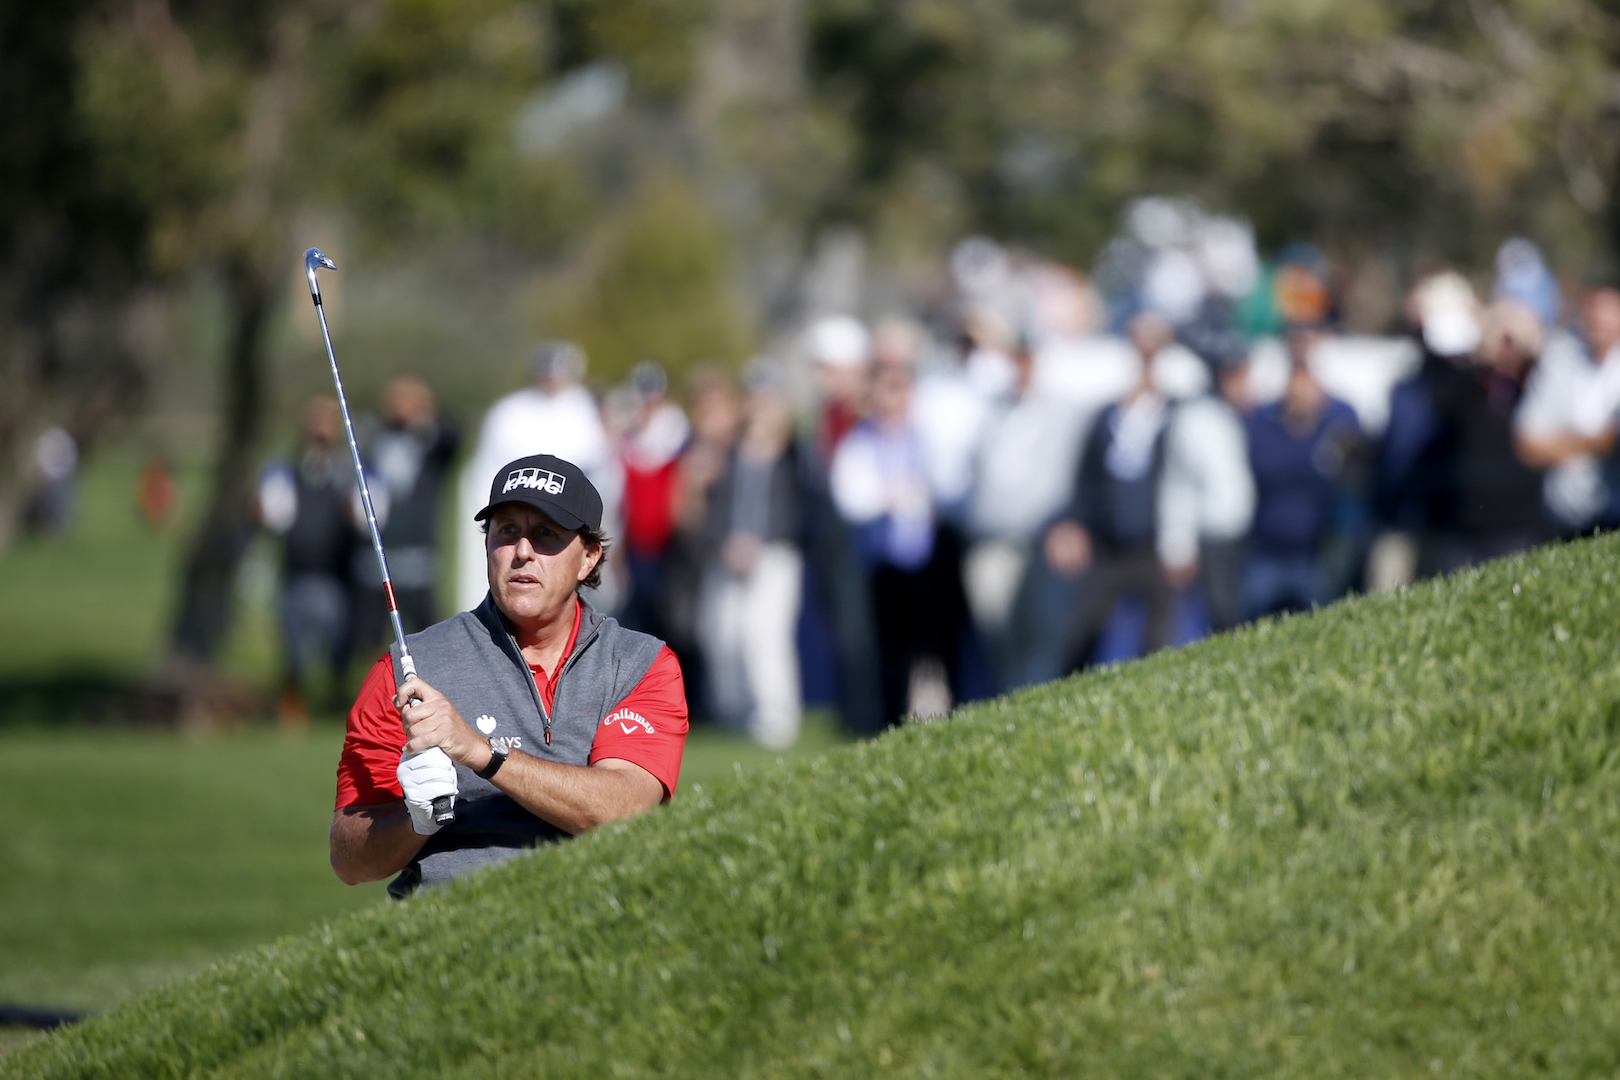 Who to bet on at Pebble Beach